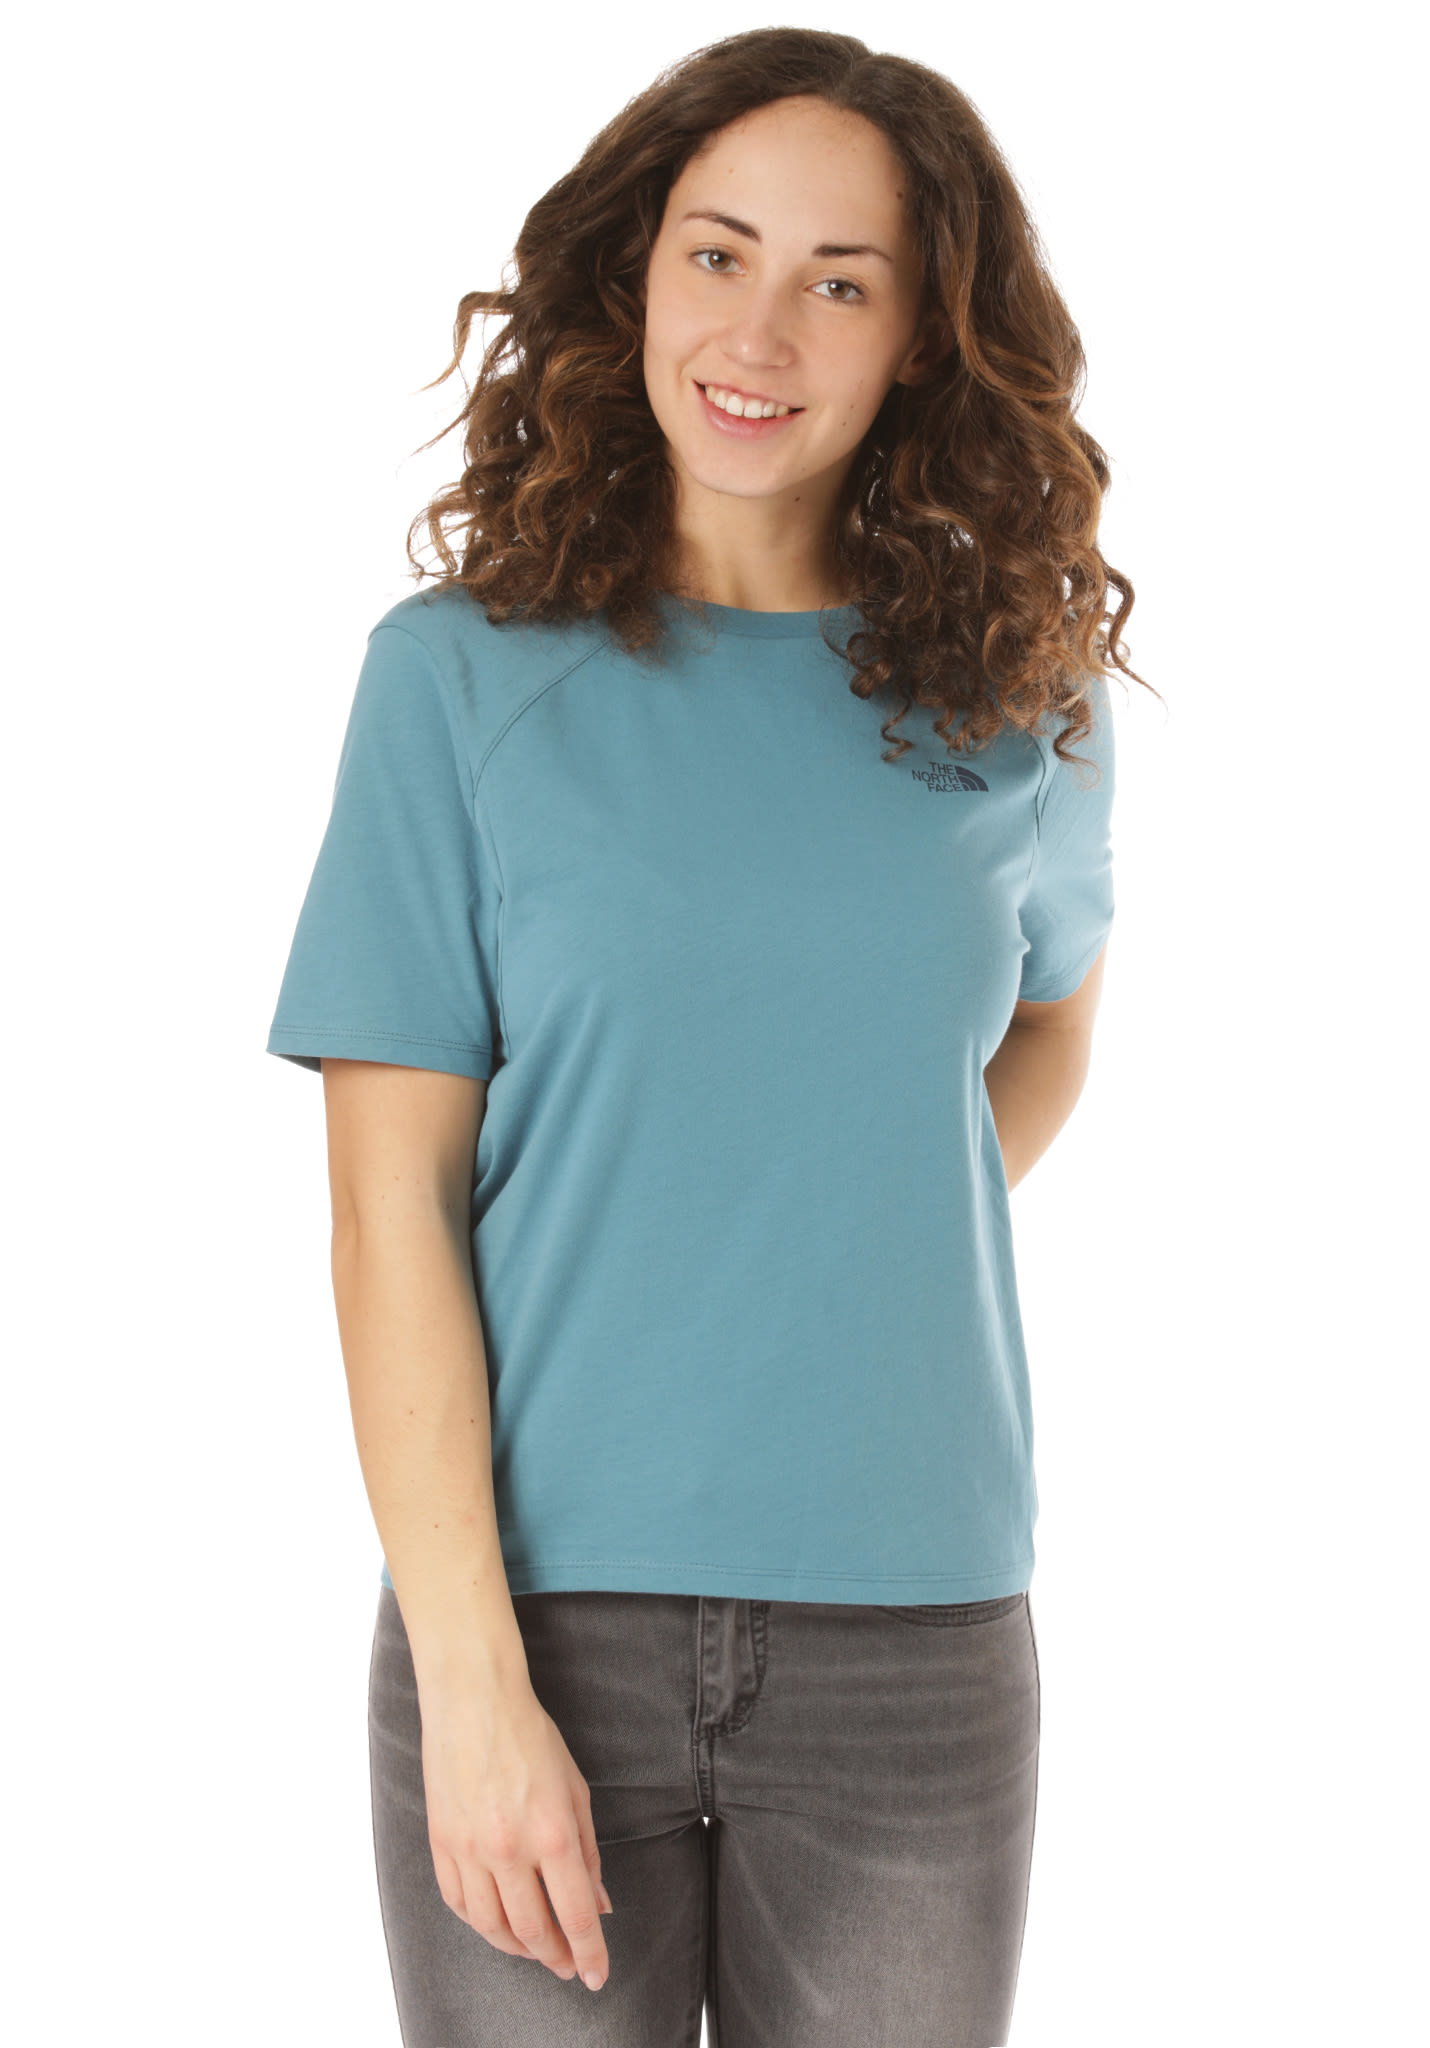 8f4b87c0 THE NORTH FACE Premium Simple Dome - T-Shirt for Women - Blue - Planet  Sports